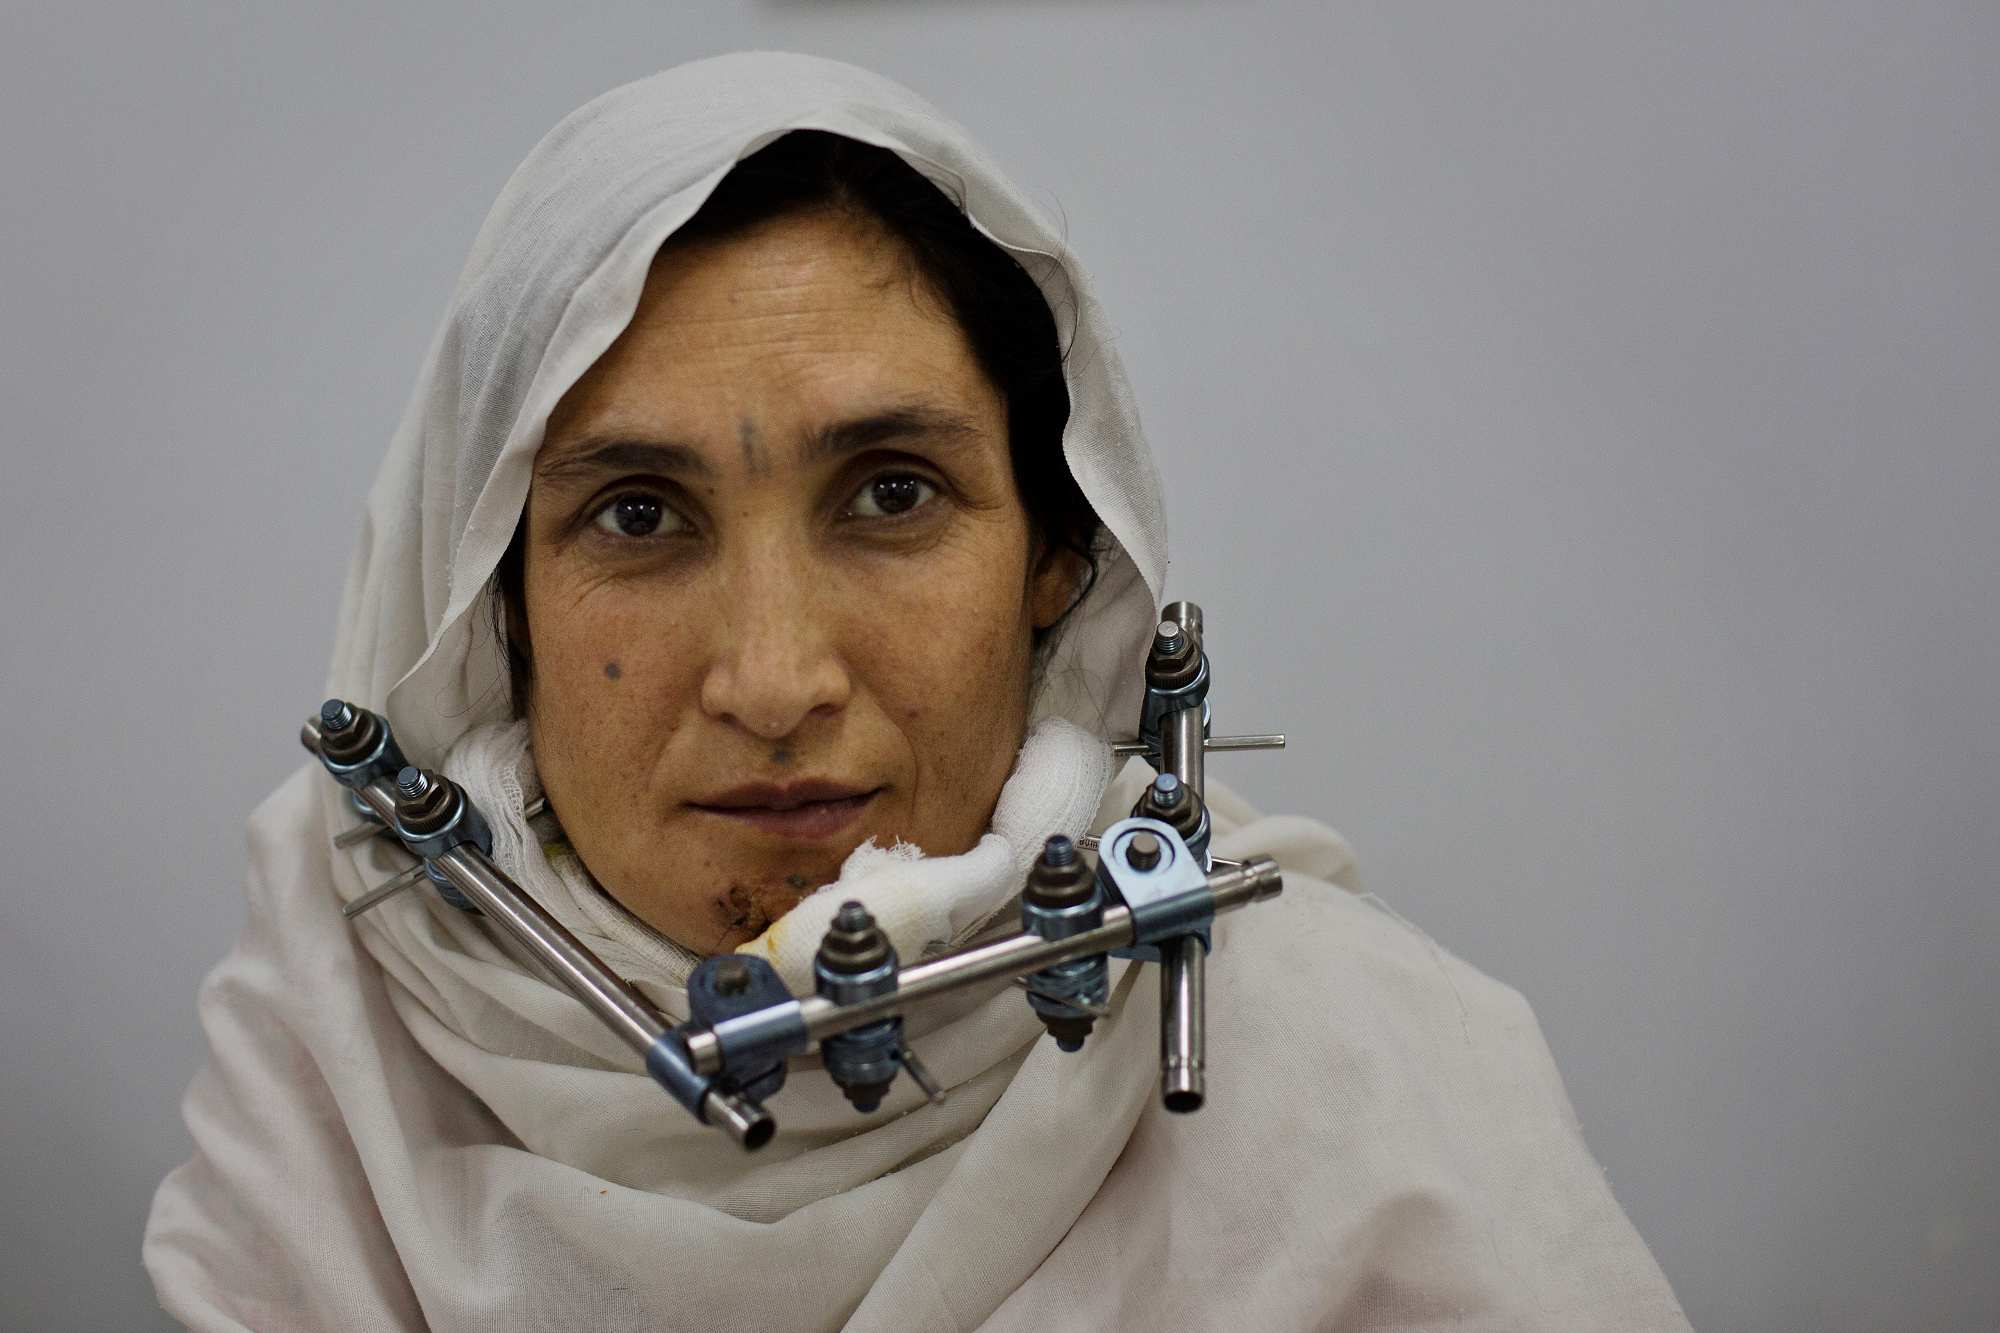 Maryam poses for a photograph after surgery to repair her shattered jaw.